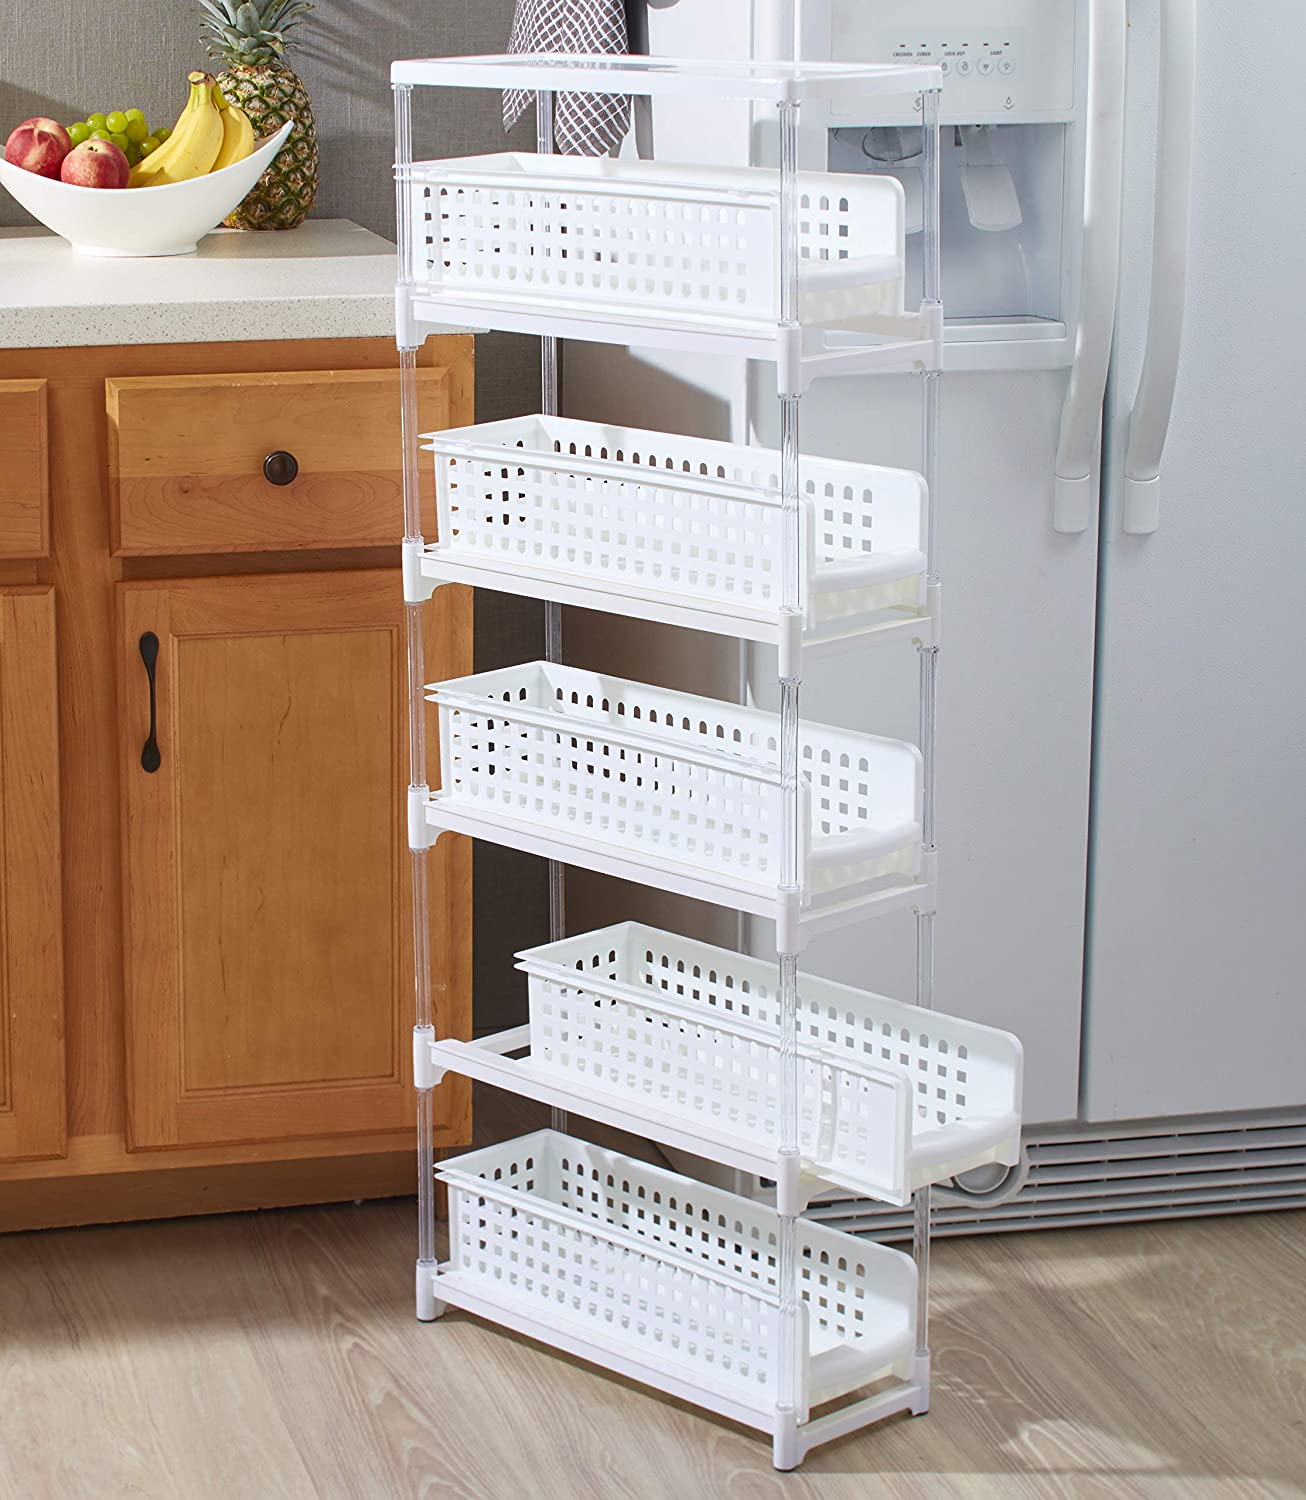 Slim Kitchen Storage With Five Slide Out Drawers For Pantries Gaps Bathrooms Kitchen Dining